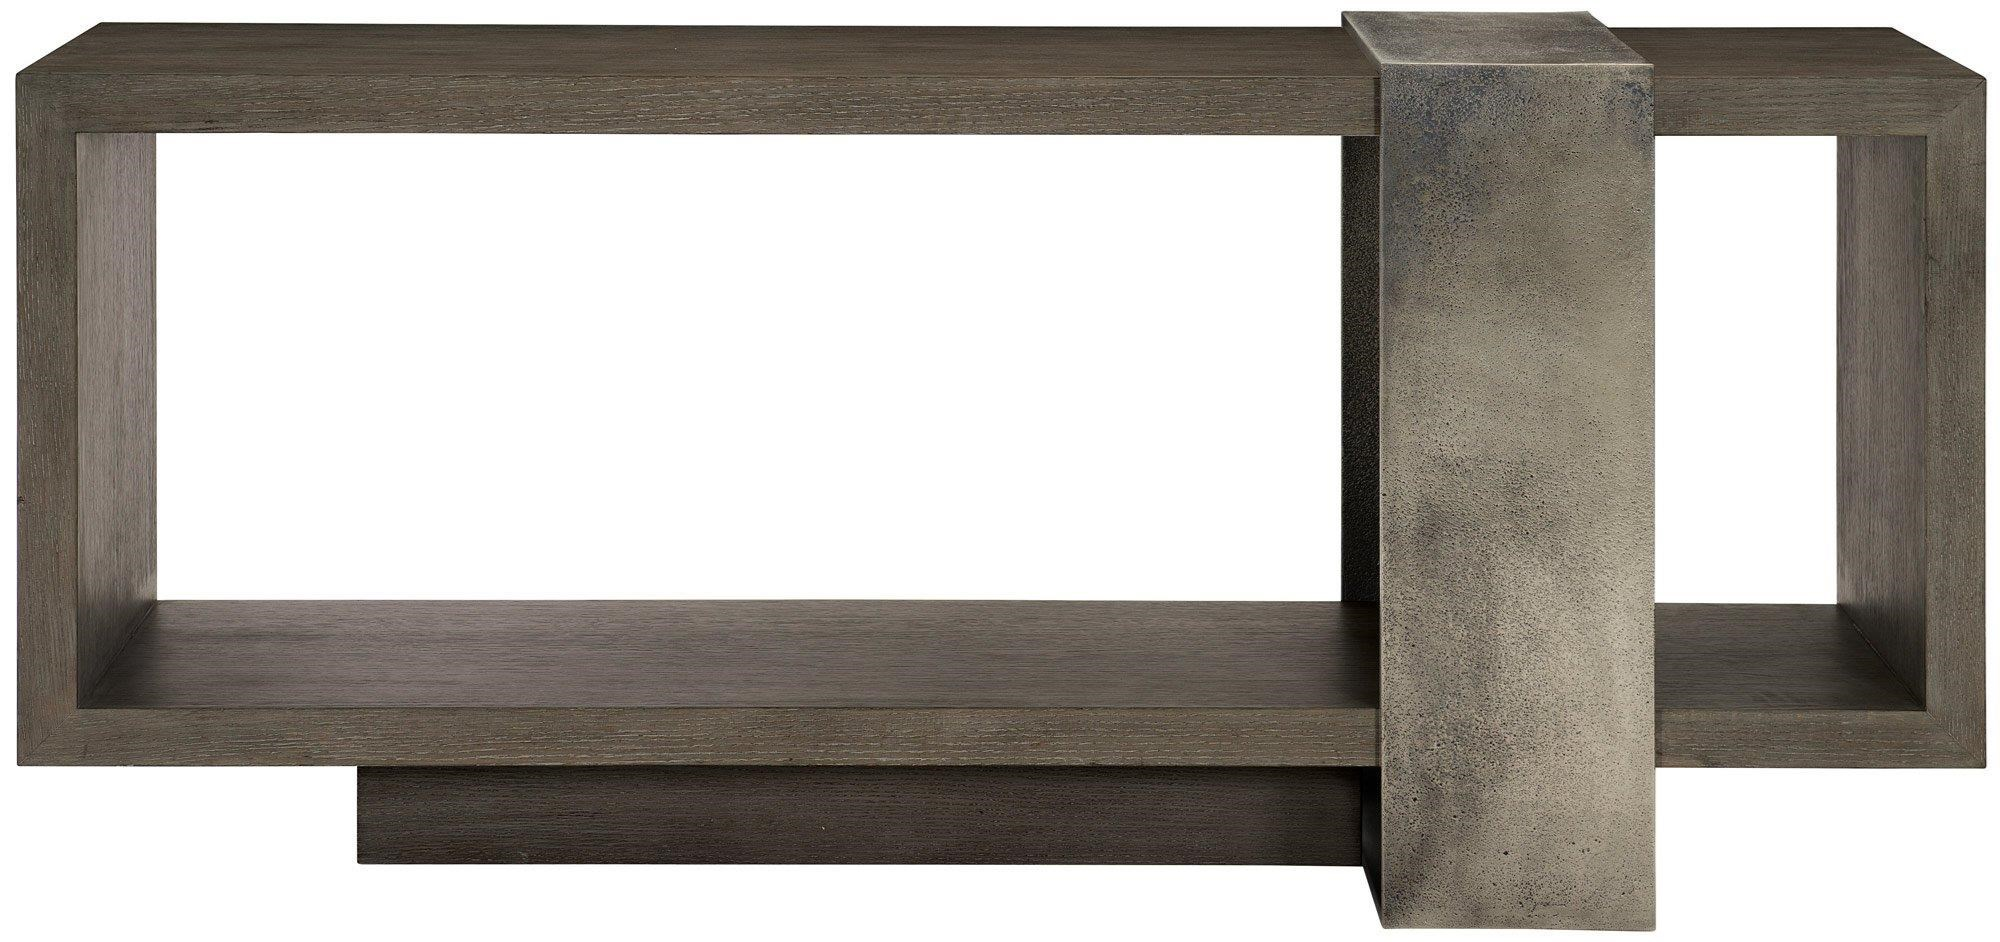 Linea Linea Console Table by Bernhardt at Morris Home